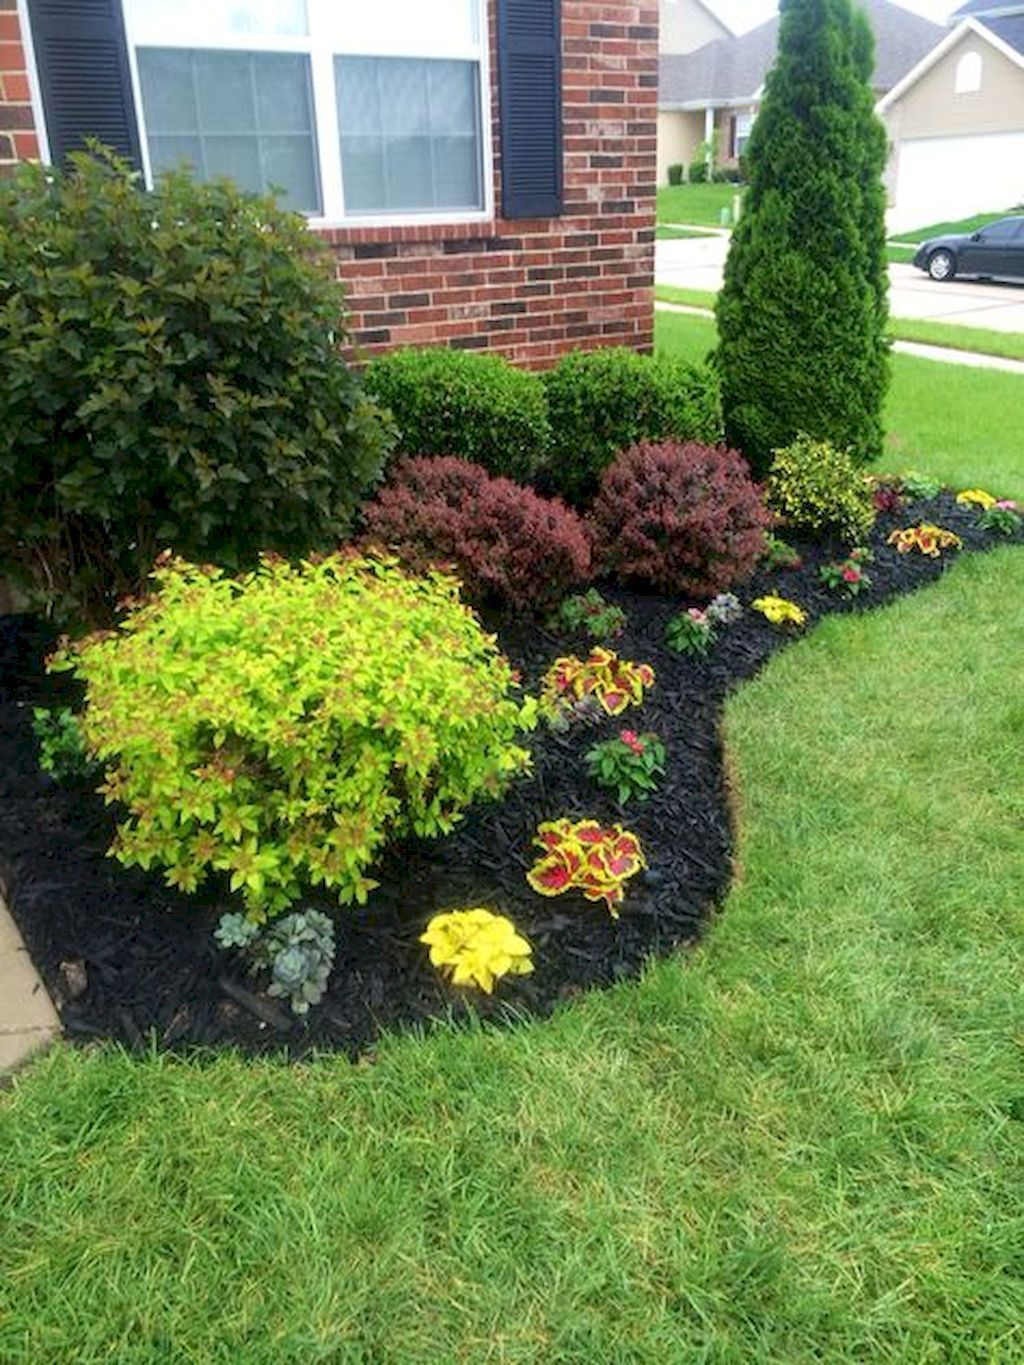 25 Beautiful Front Yard Landscaping Ideas on a Budget (7) YHJLPBL